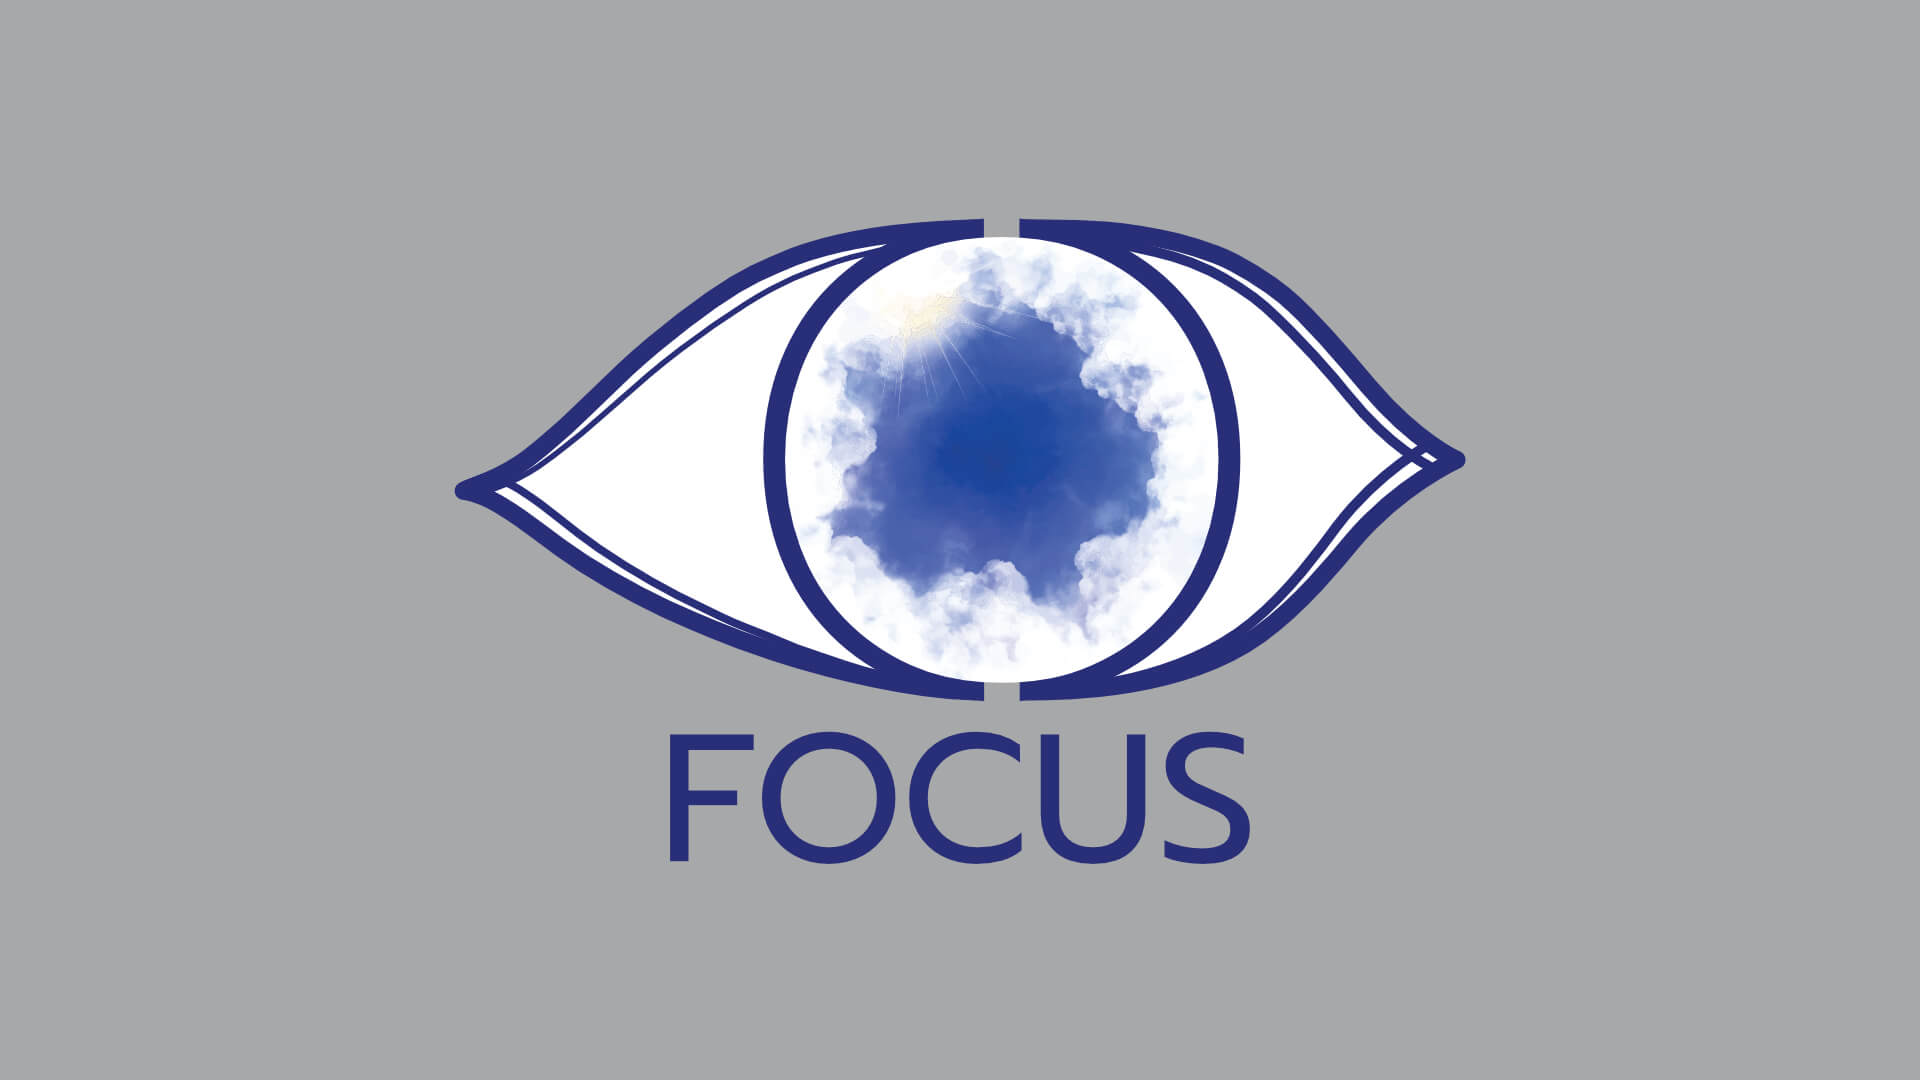 FOCUS ON HEAVENLY THINGS ABOVE